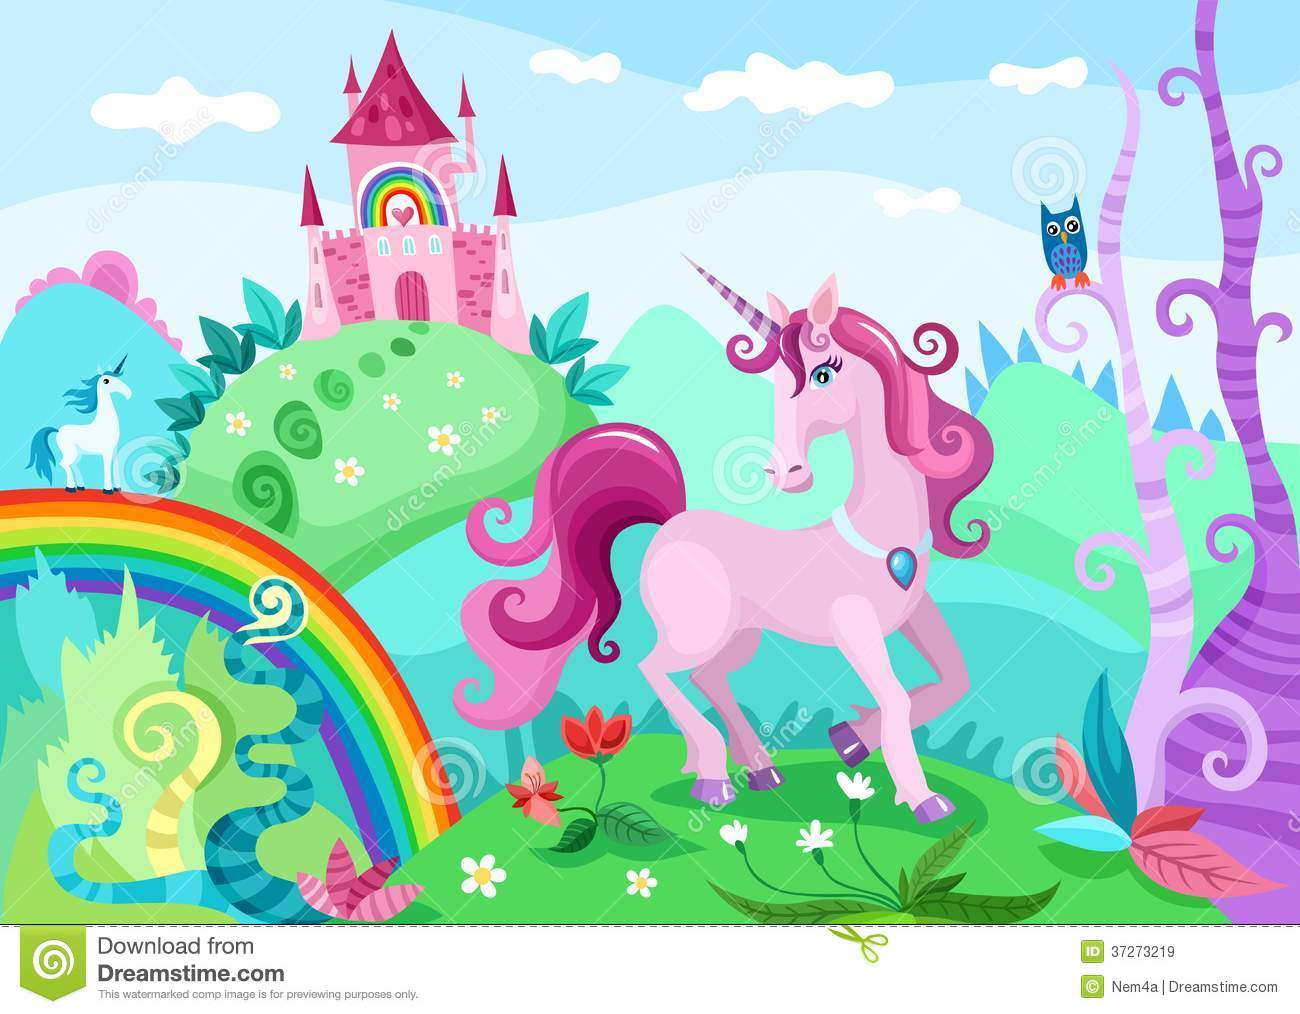 Unicorn Invitation was best invitation ideas